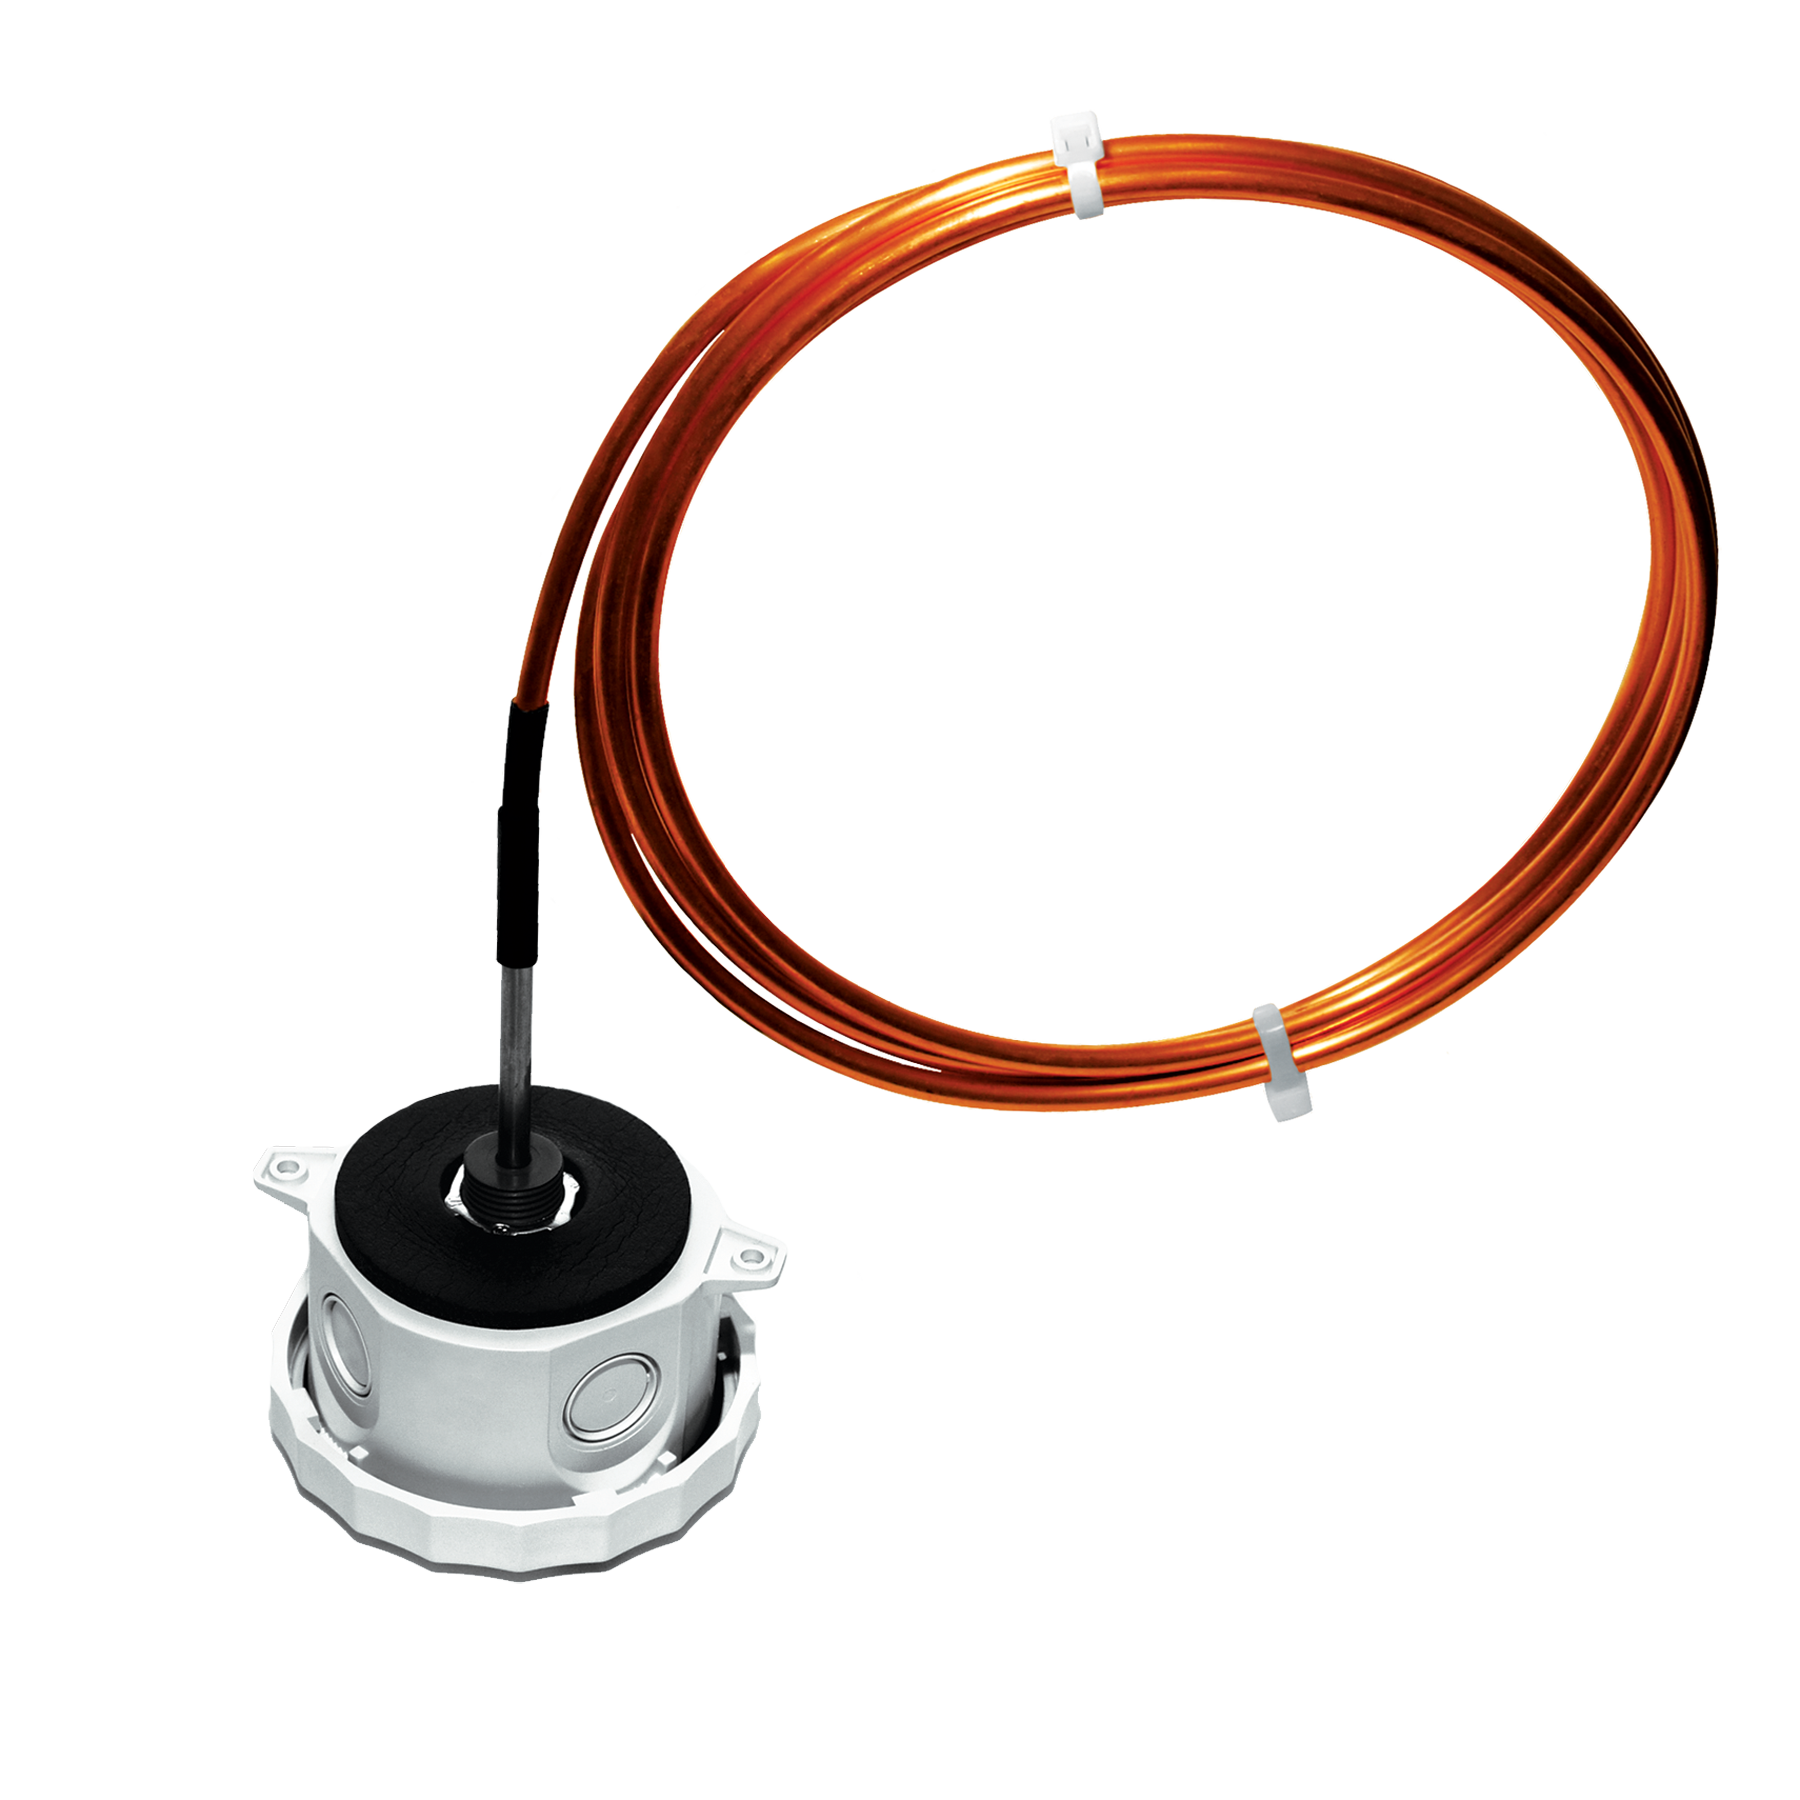 ACI A/20K-A-50'-EH Averaging Temperature Sensor